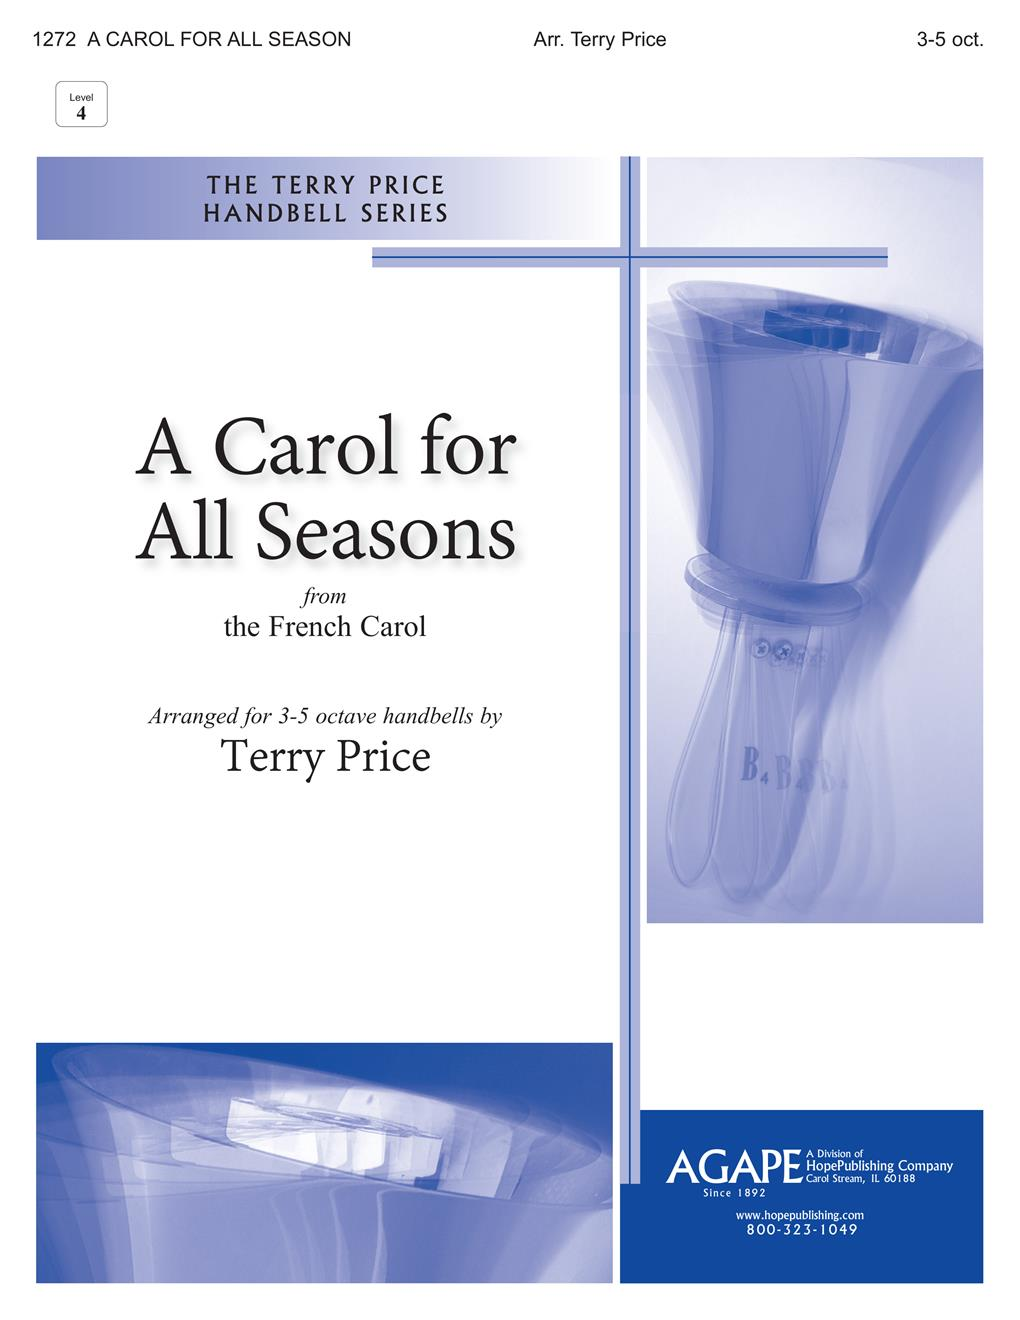 Carol for All Seasons A - 3-5 Octave Cover Image